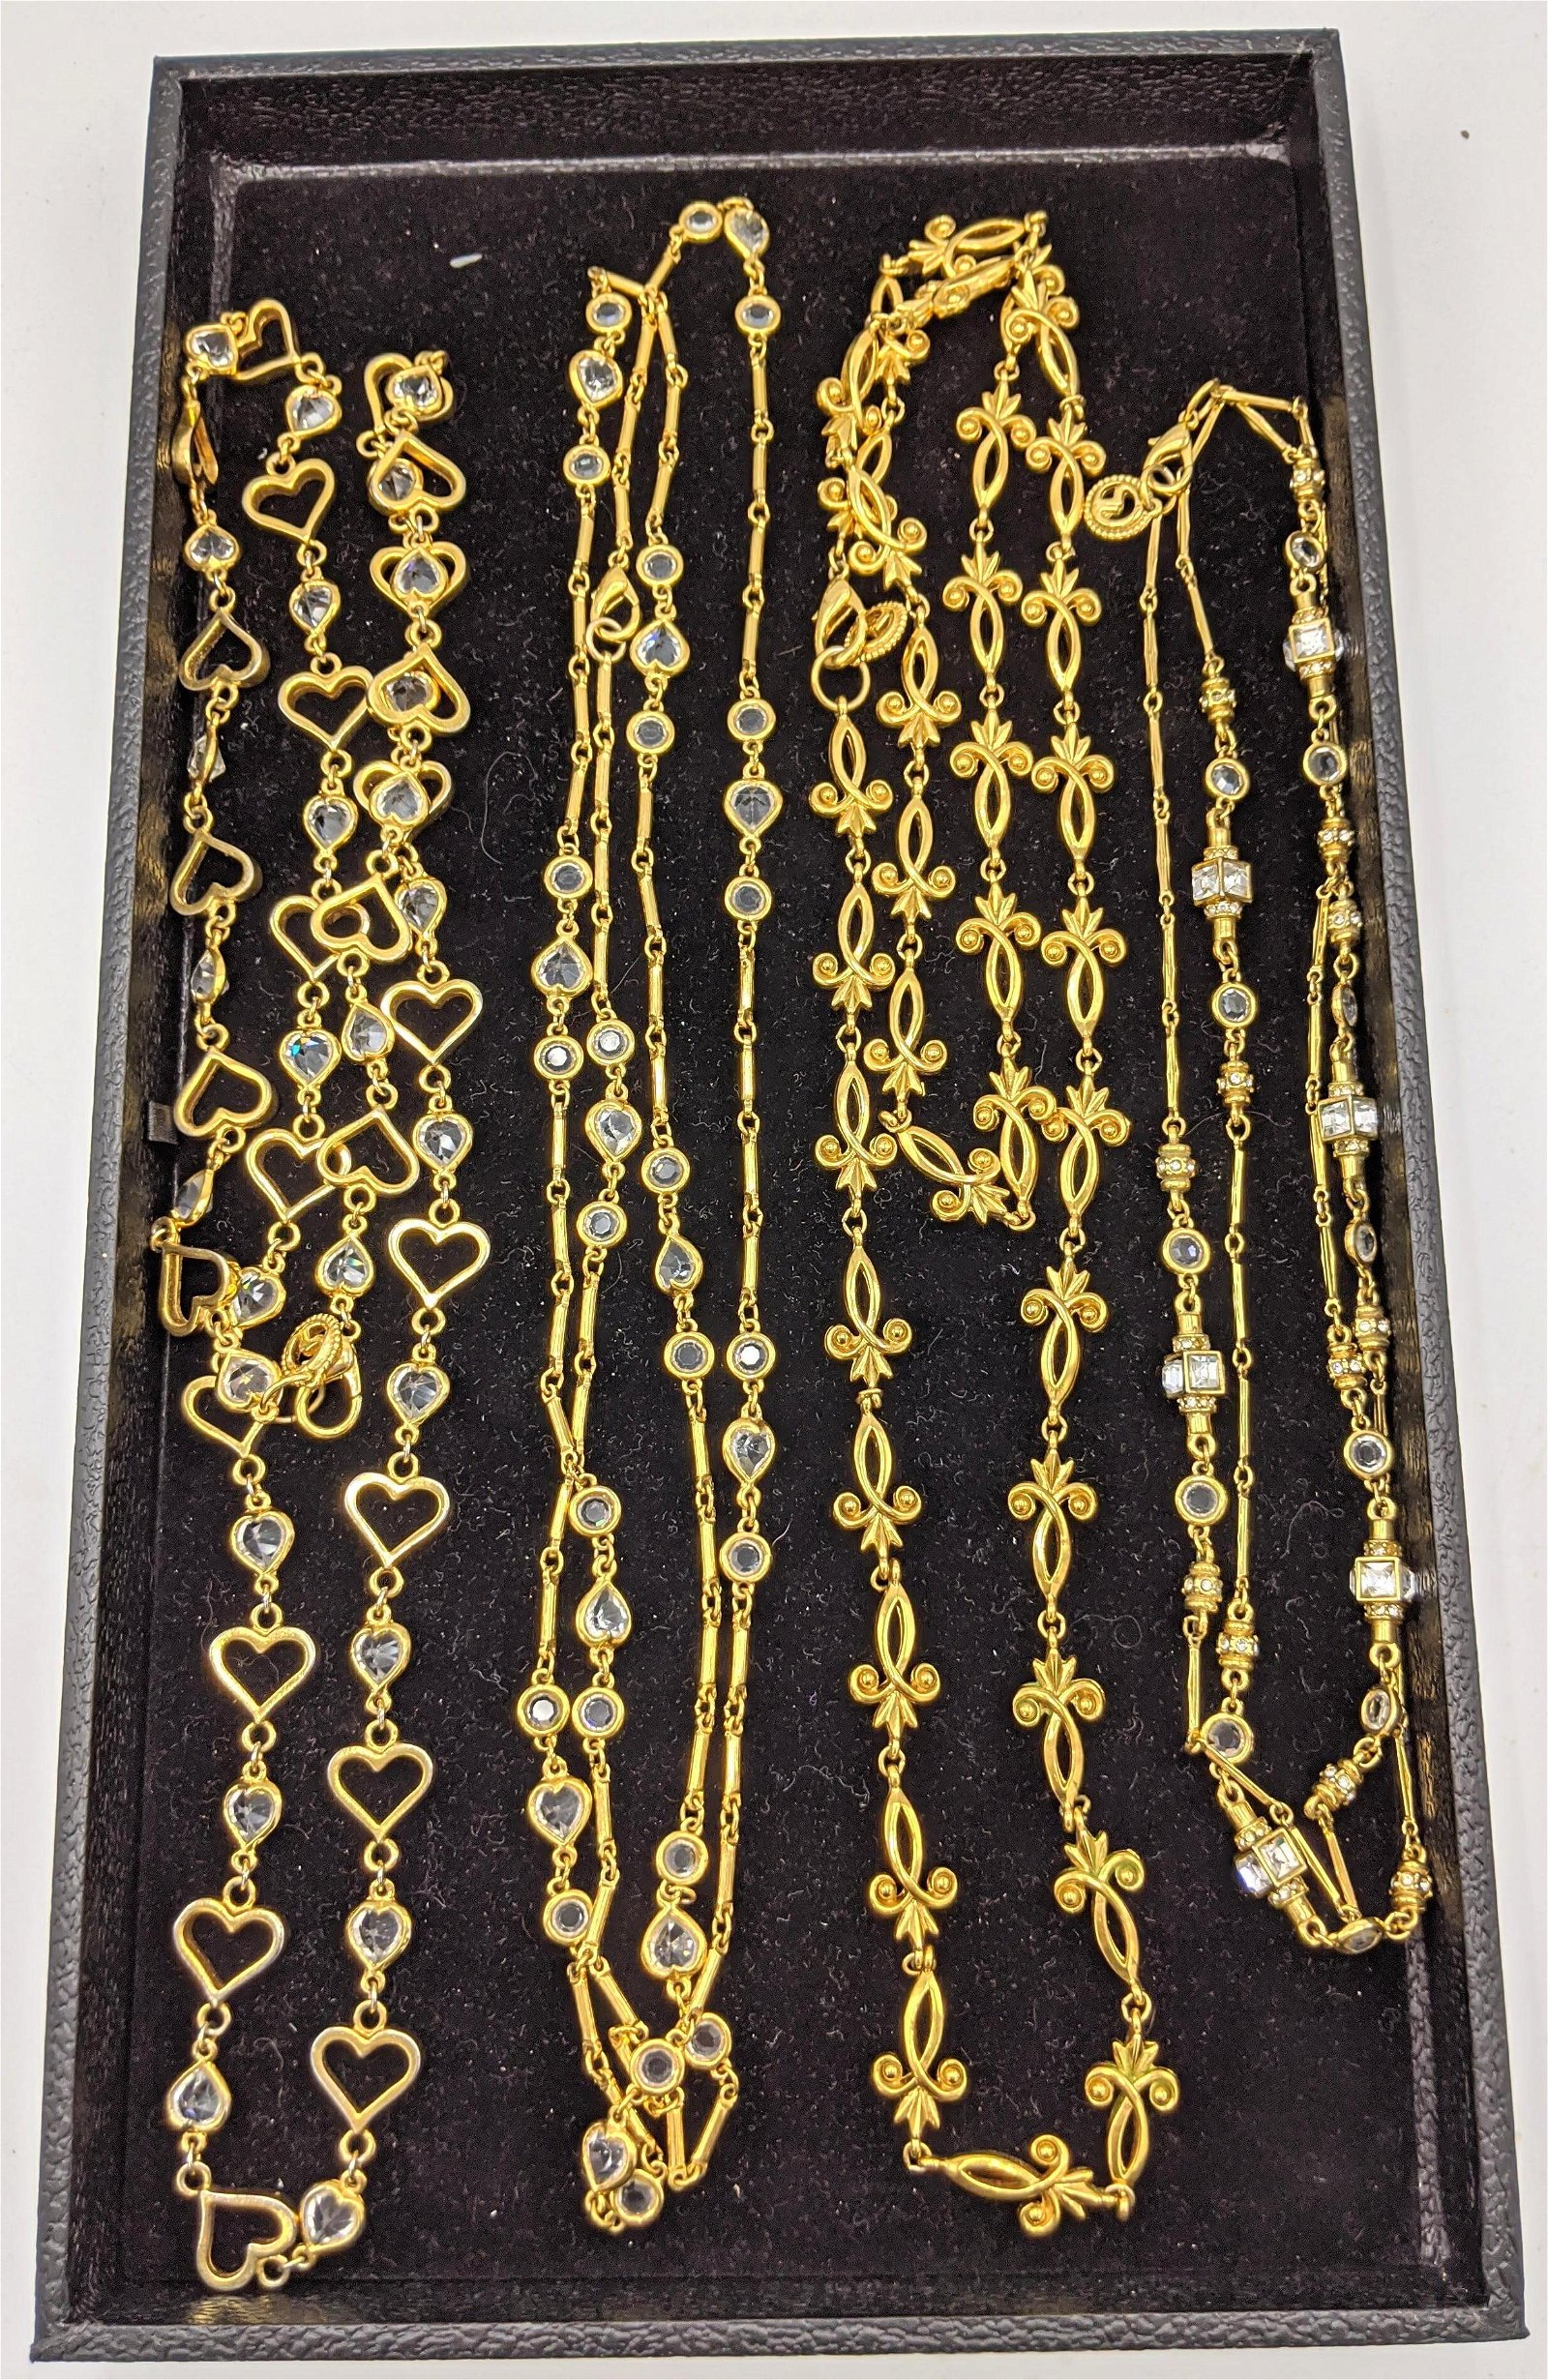 4 Gold Tone Costume Jewelry Chain Necklaces. 3 ST. JOHN